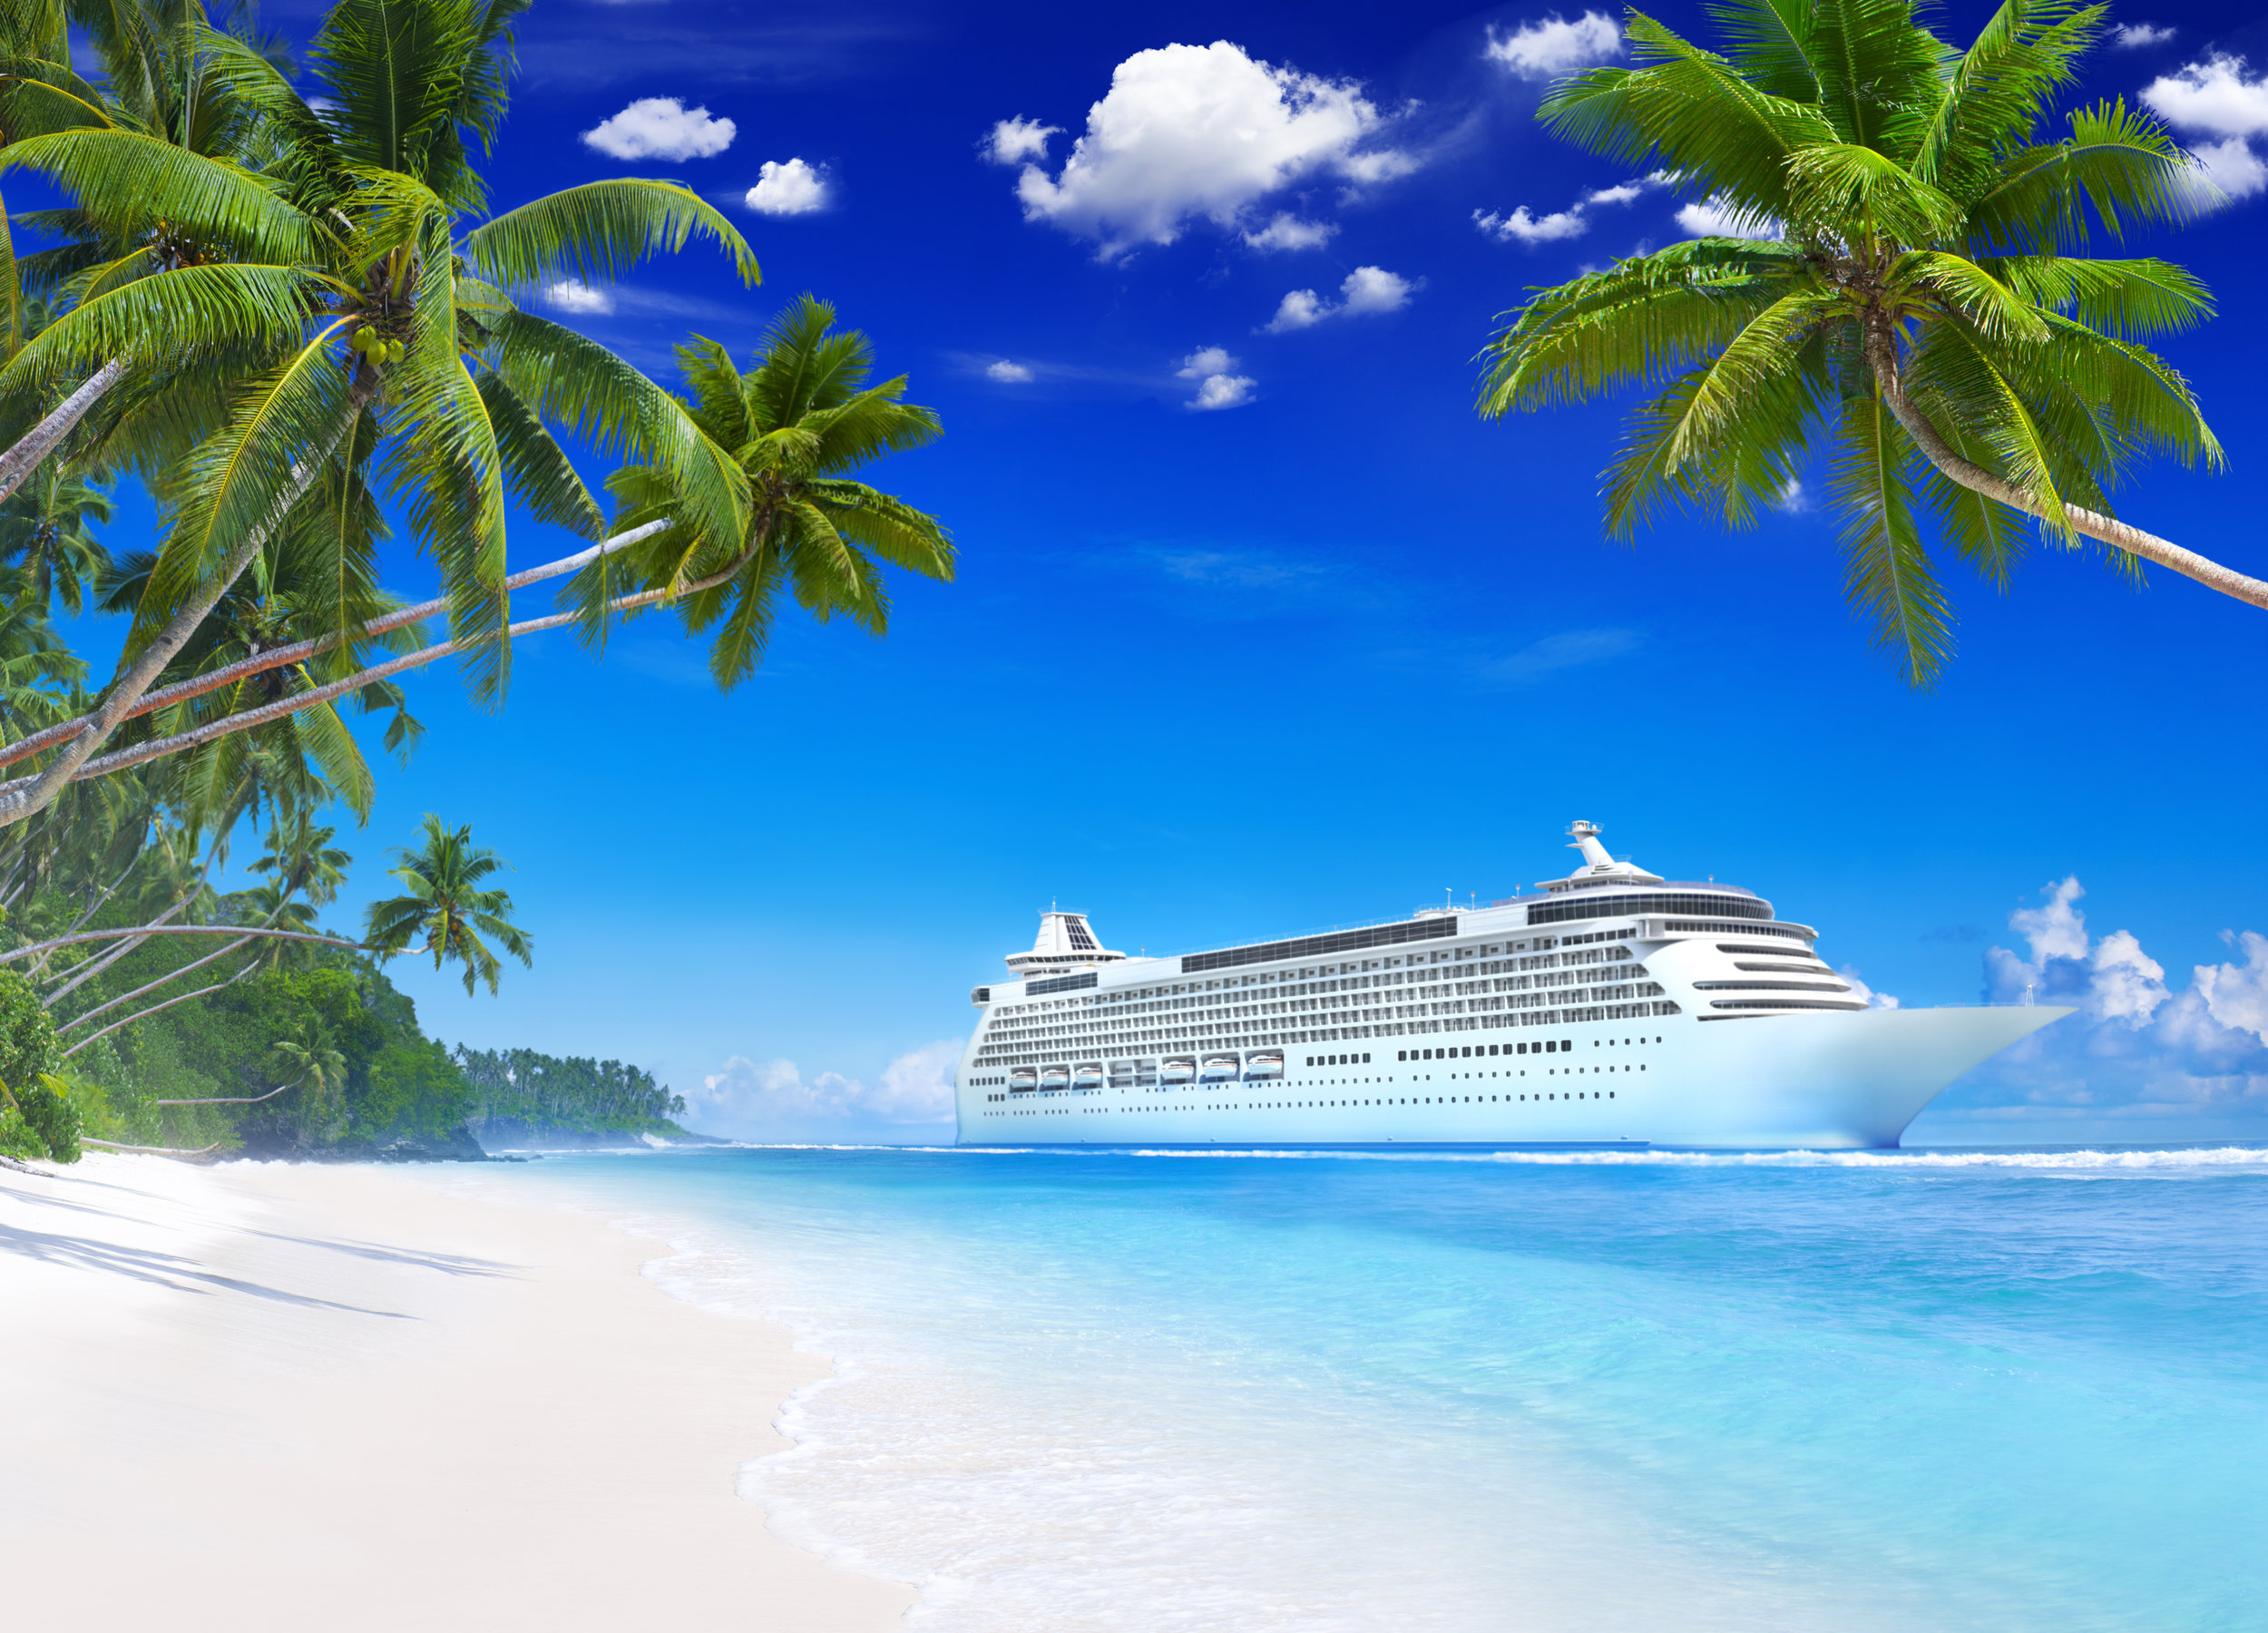 tropical_cruise_ship.jpeg